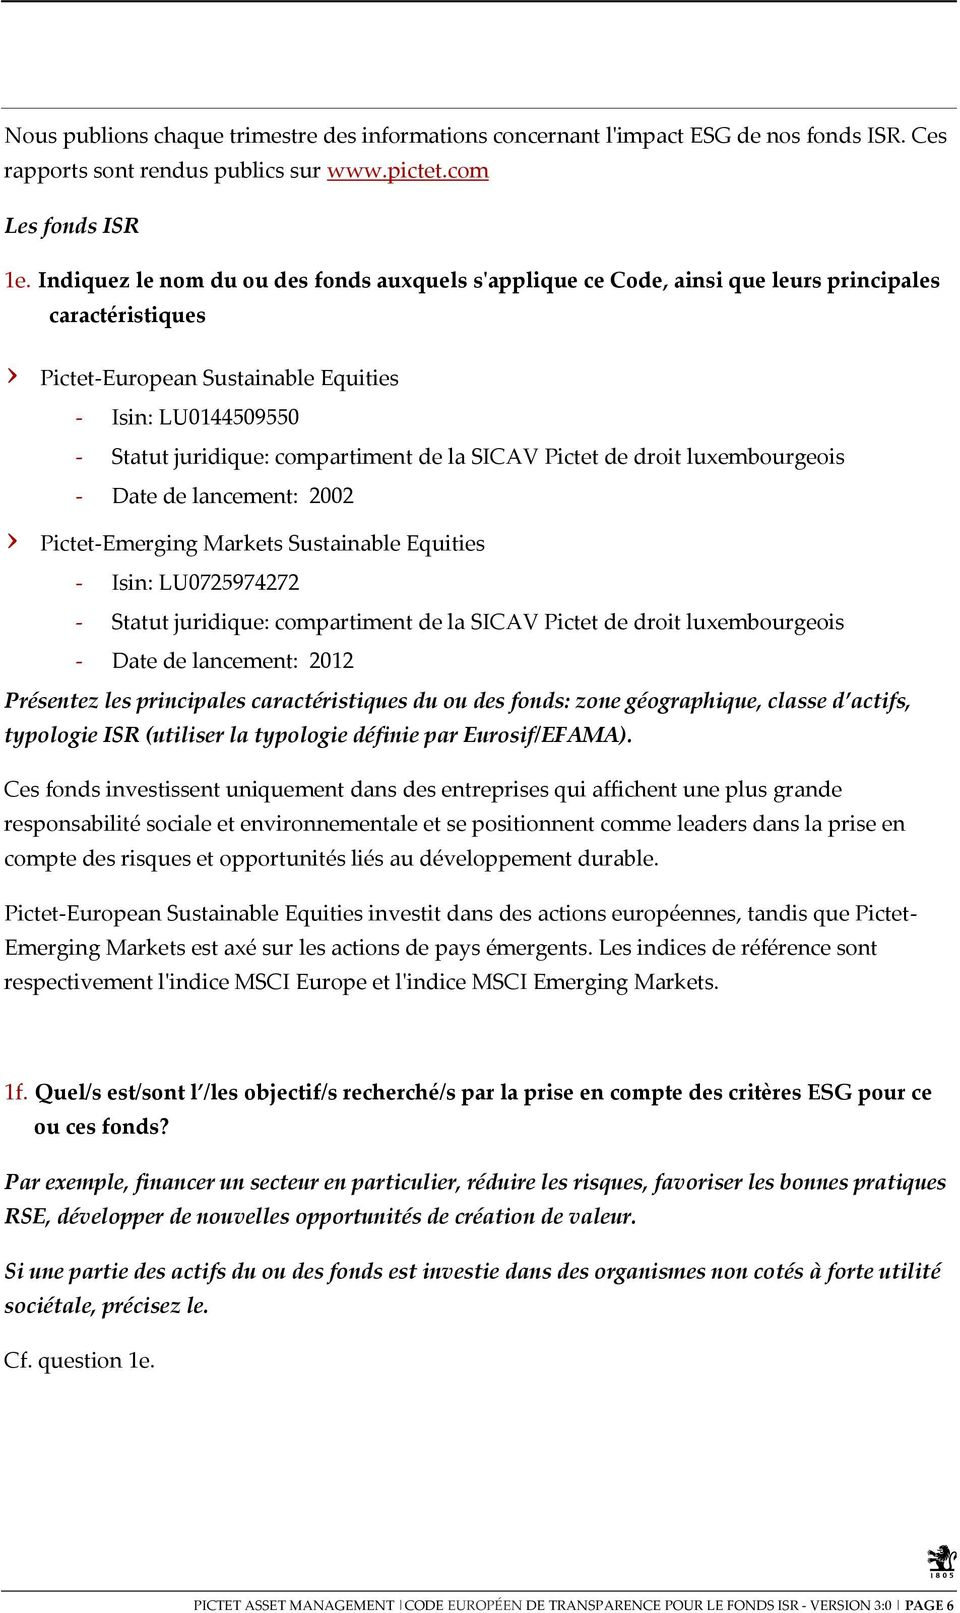 la SICAV Pictet de droit luxembourgeois - Date de lancement: 2002 Pictet-Emerging Markets Sustainable Equities - Isin: LU0725974272 - Statut juridique: compartiment de la SICAV Pictet de droit